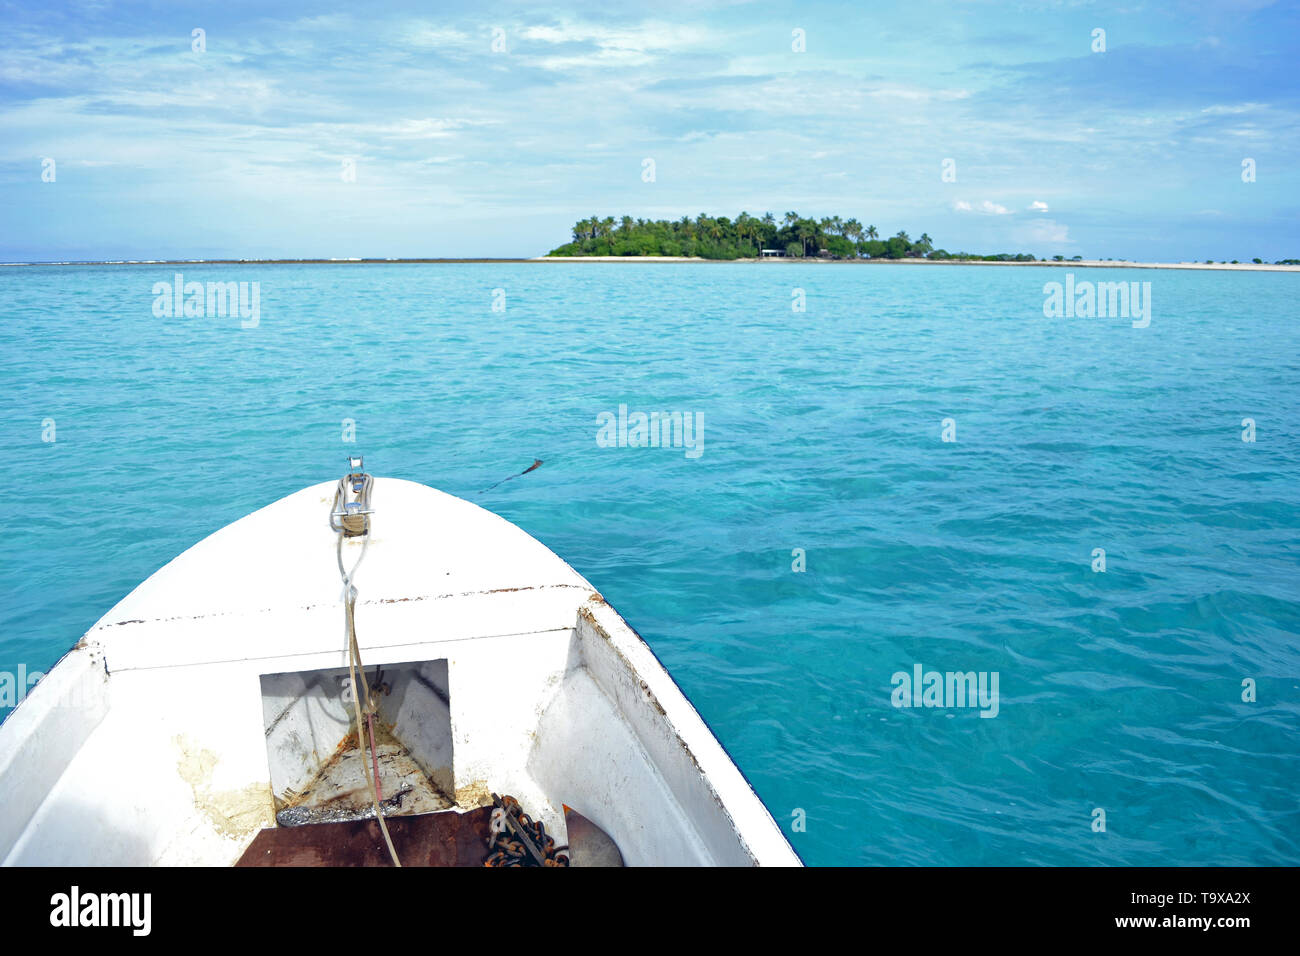 Boat view of Nukuhione motu, Wallis Island, Wallis & Futuna, South Pacific - Stock Image